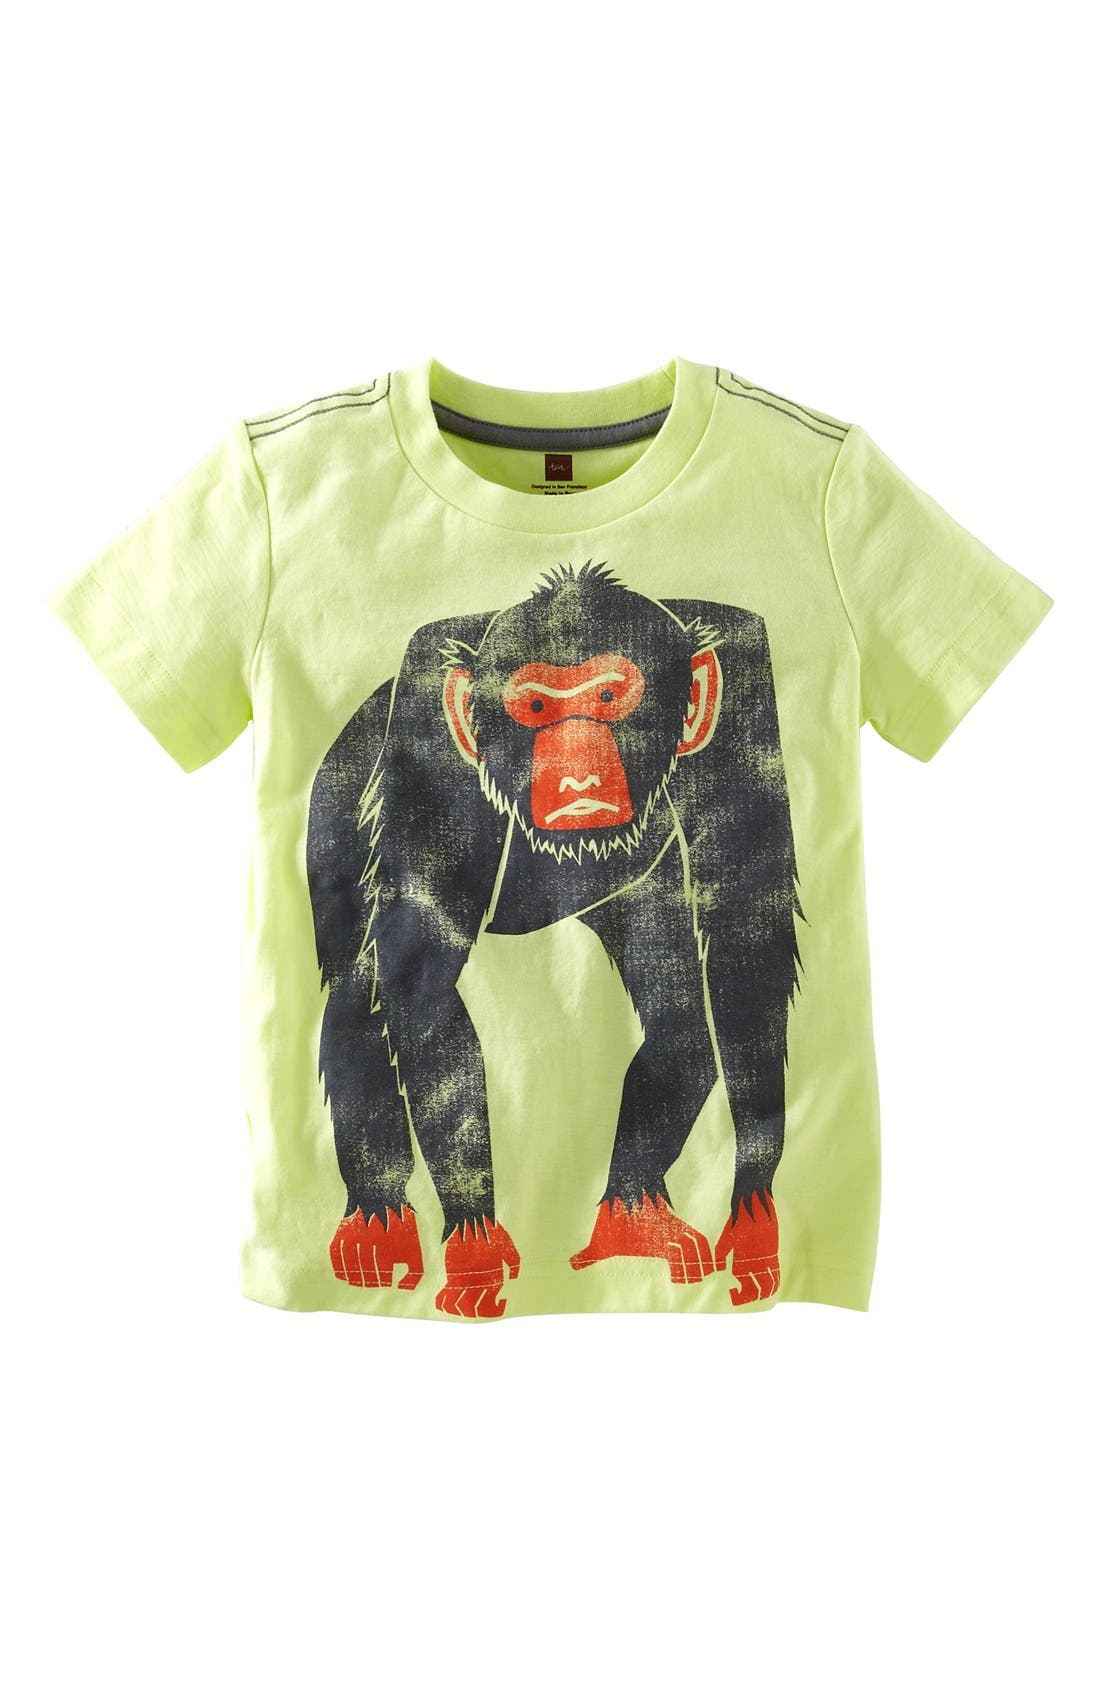 Alternate Image 1 Selected - Tea Collection 'Barbary Ape' Graphic T-Shirt (Little Boys & Big Boys)